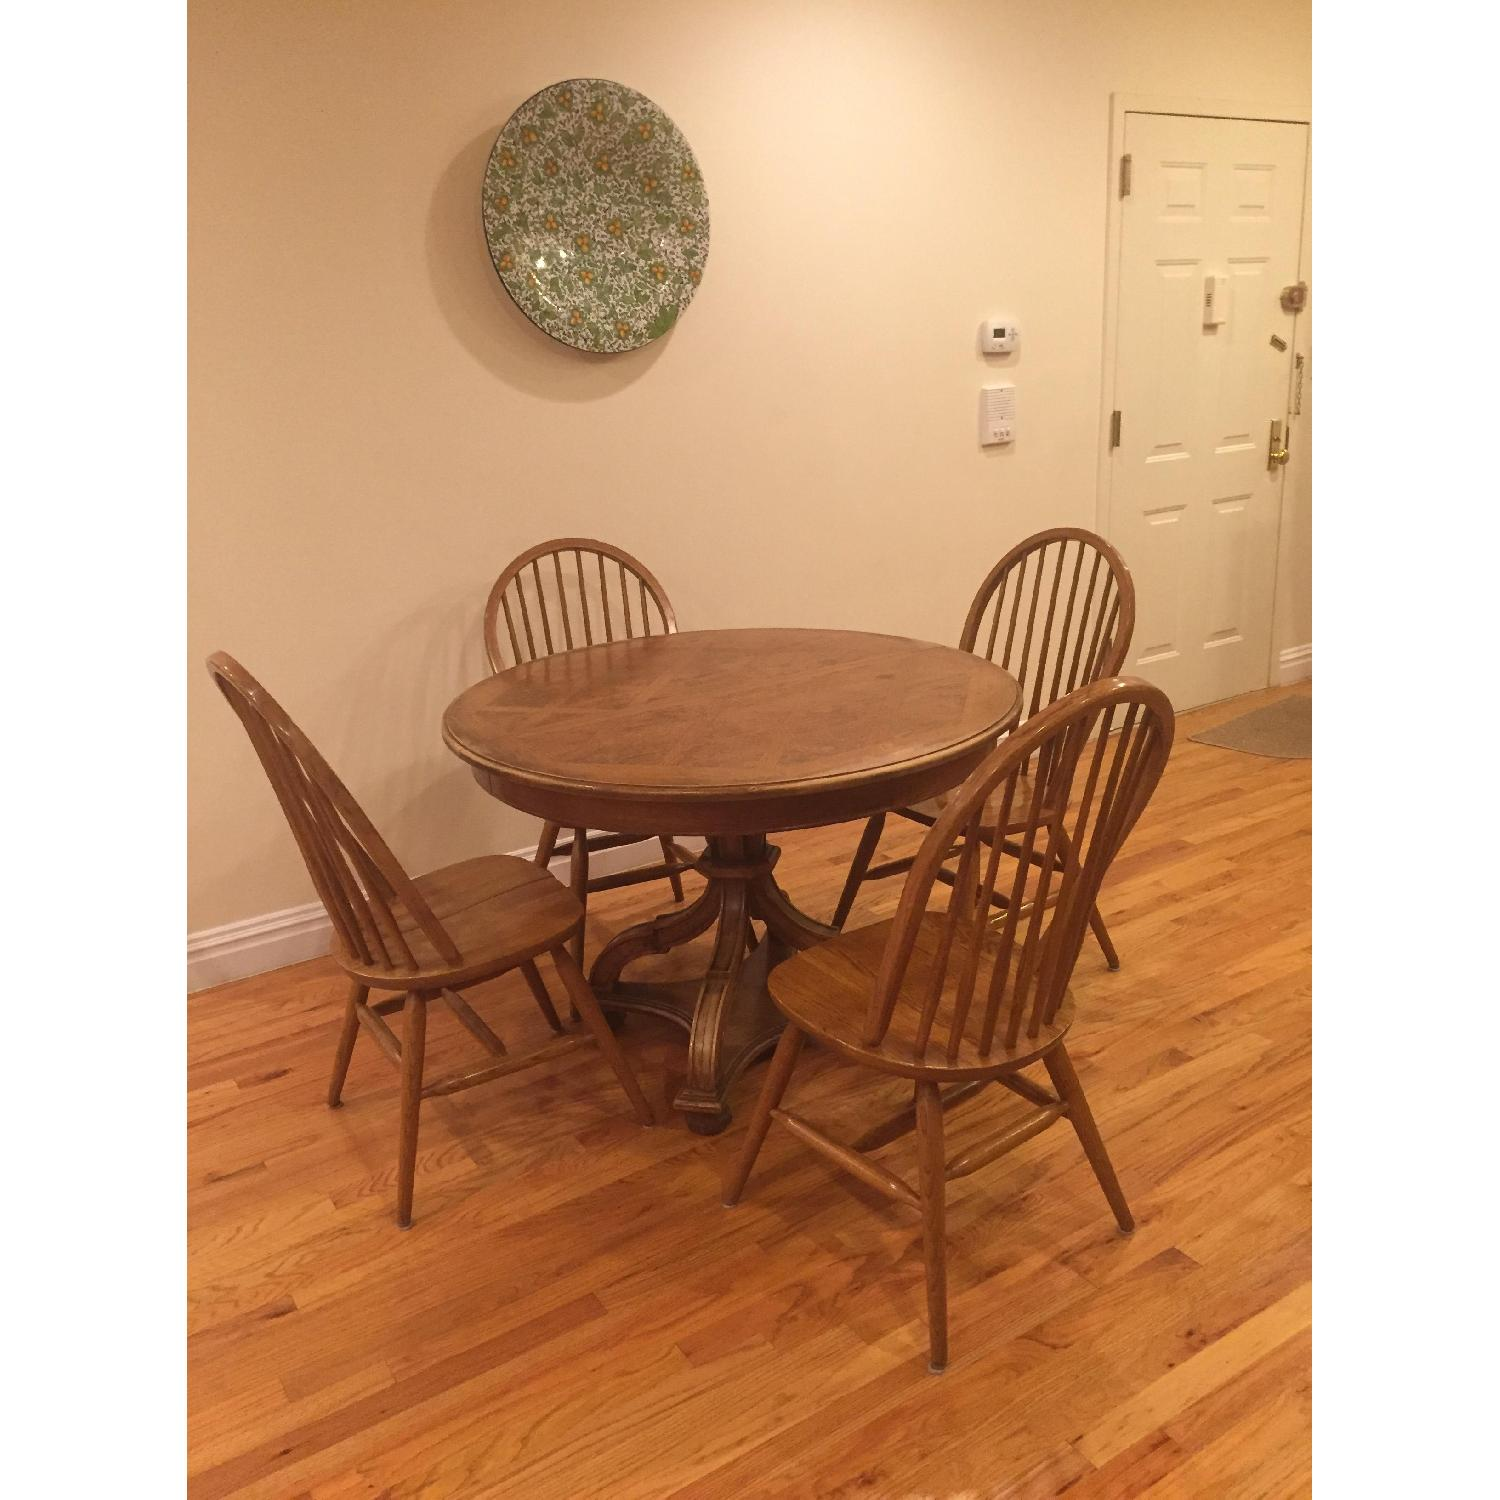 Dining Table w/ 4 Chairs - image-3